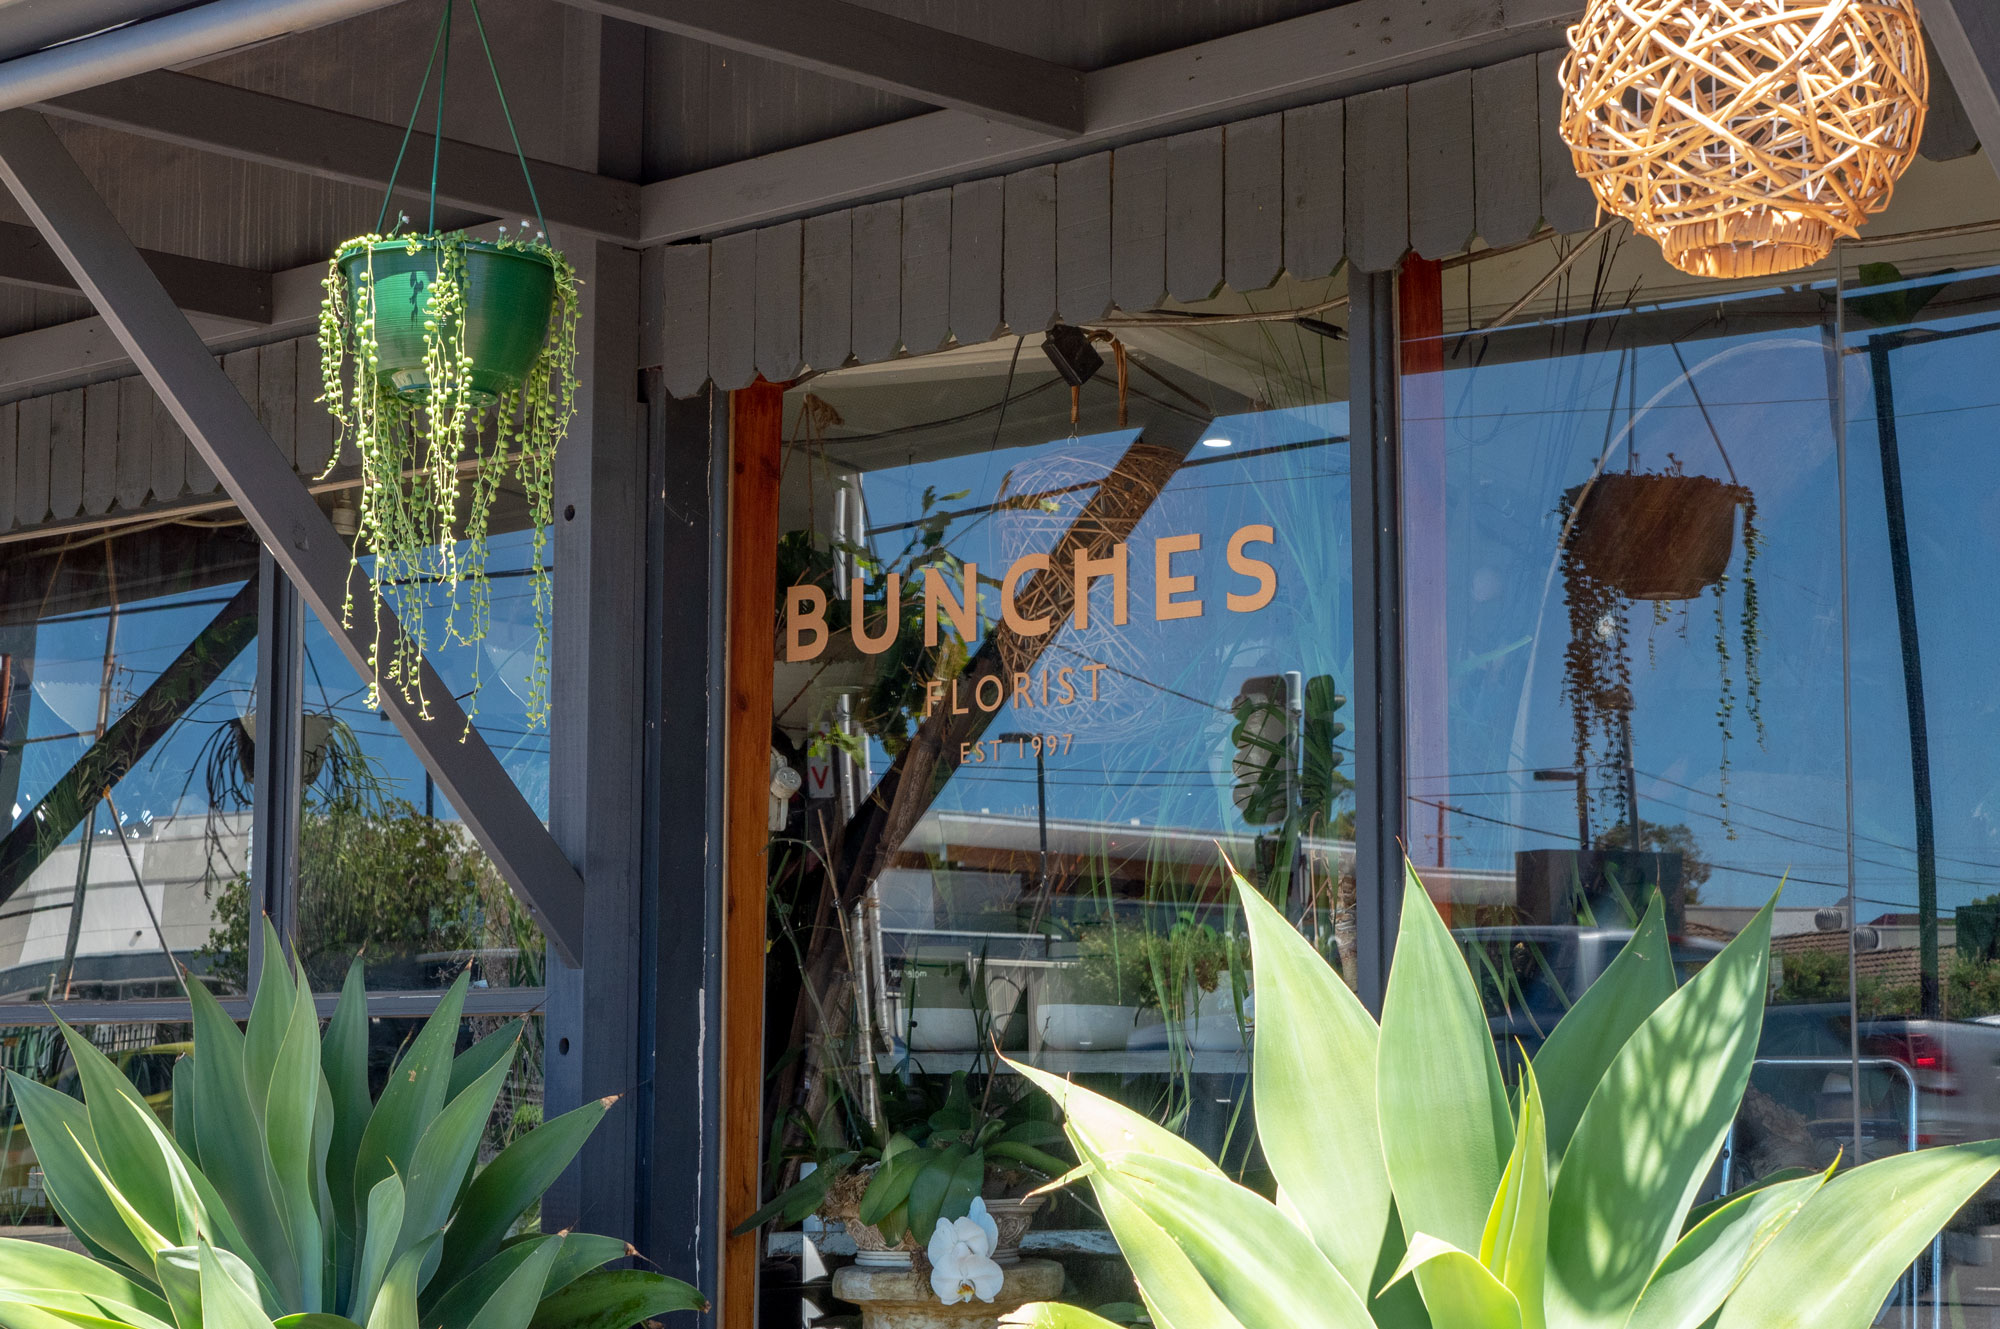 Bunches Florist - Window Vinyl Lettering